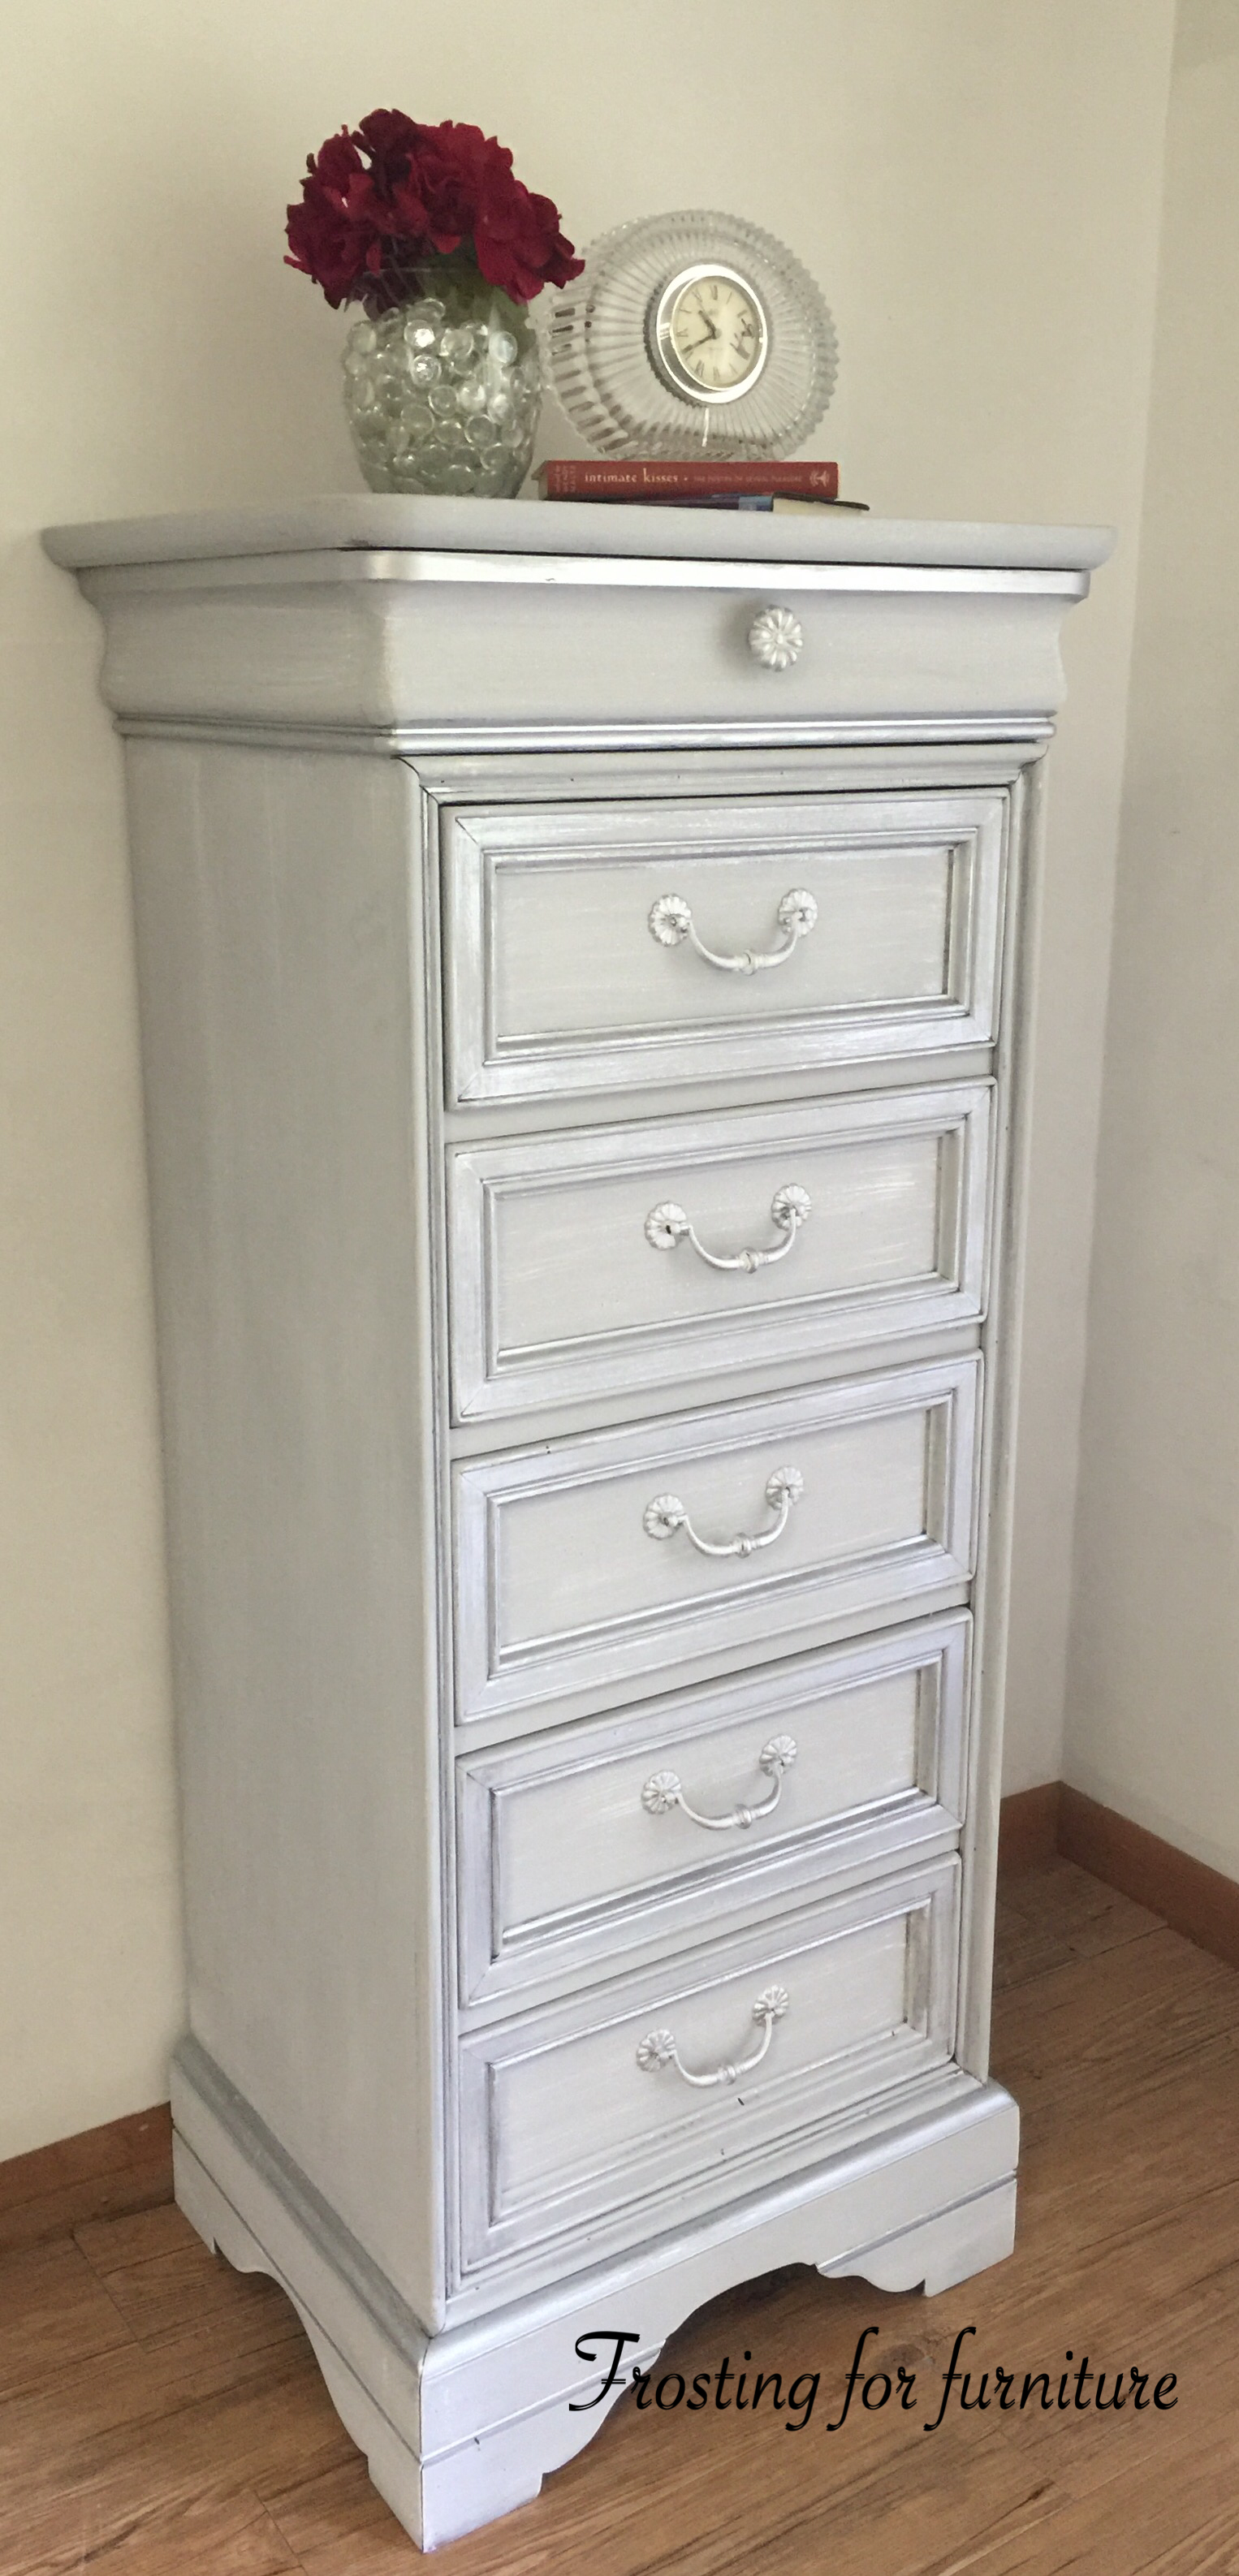 French Provincial lingerie chest painted in Annie Sloan Paris Gray